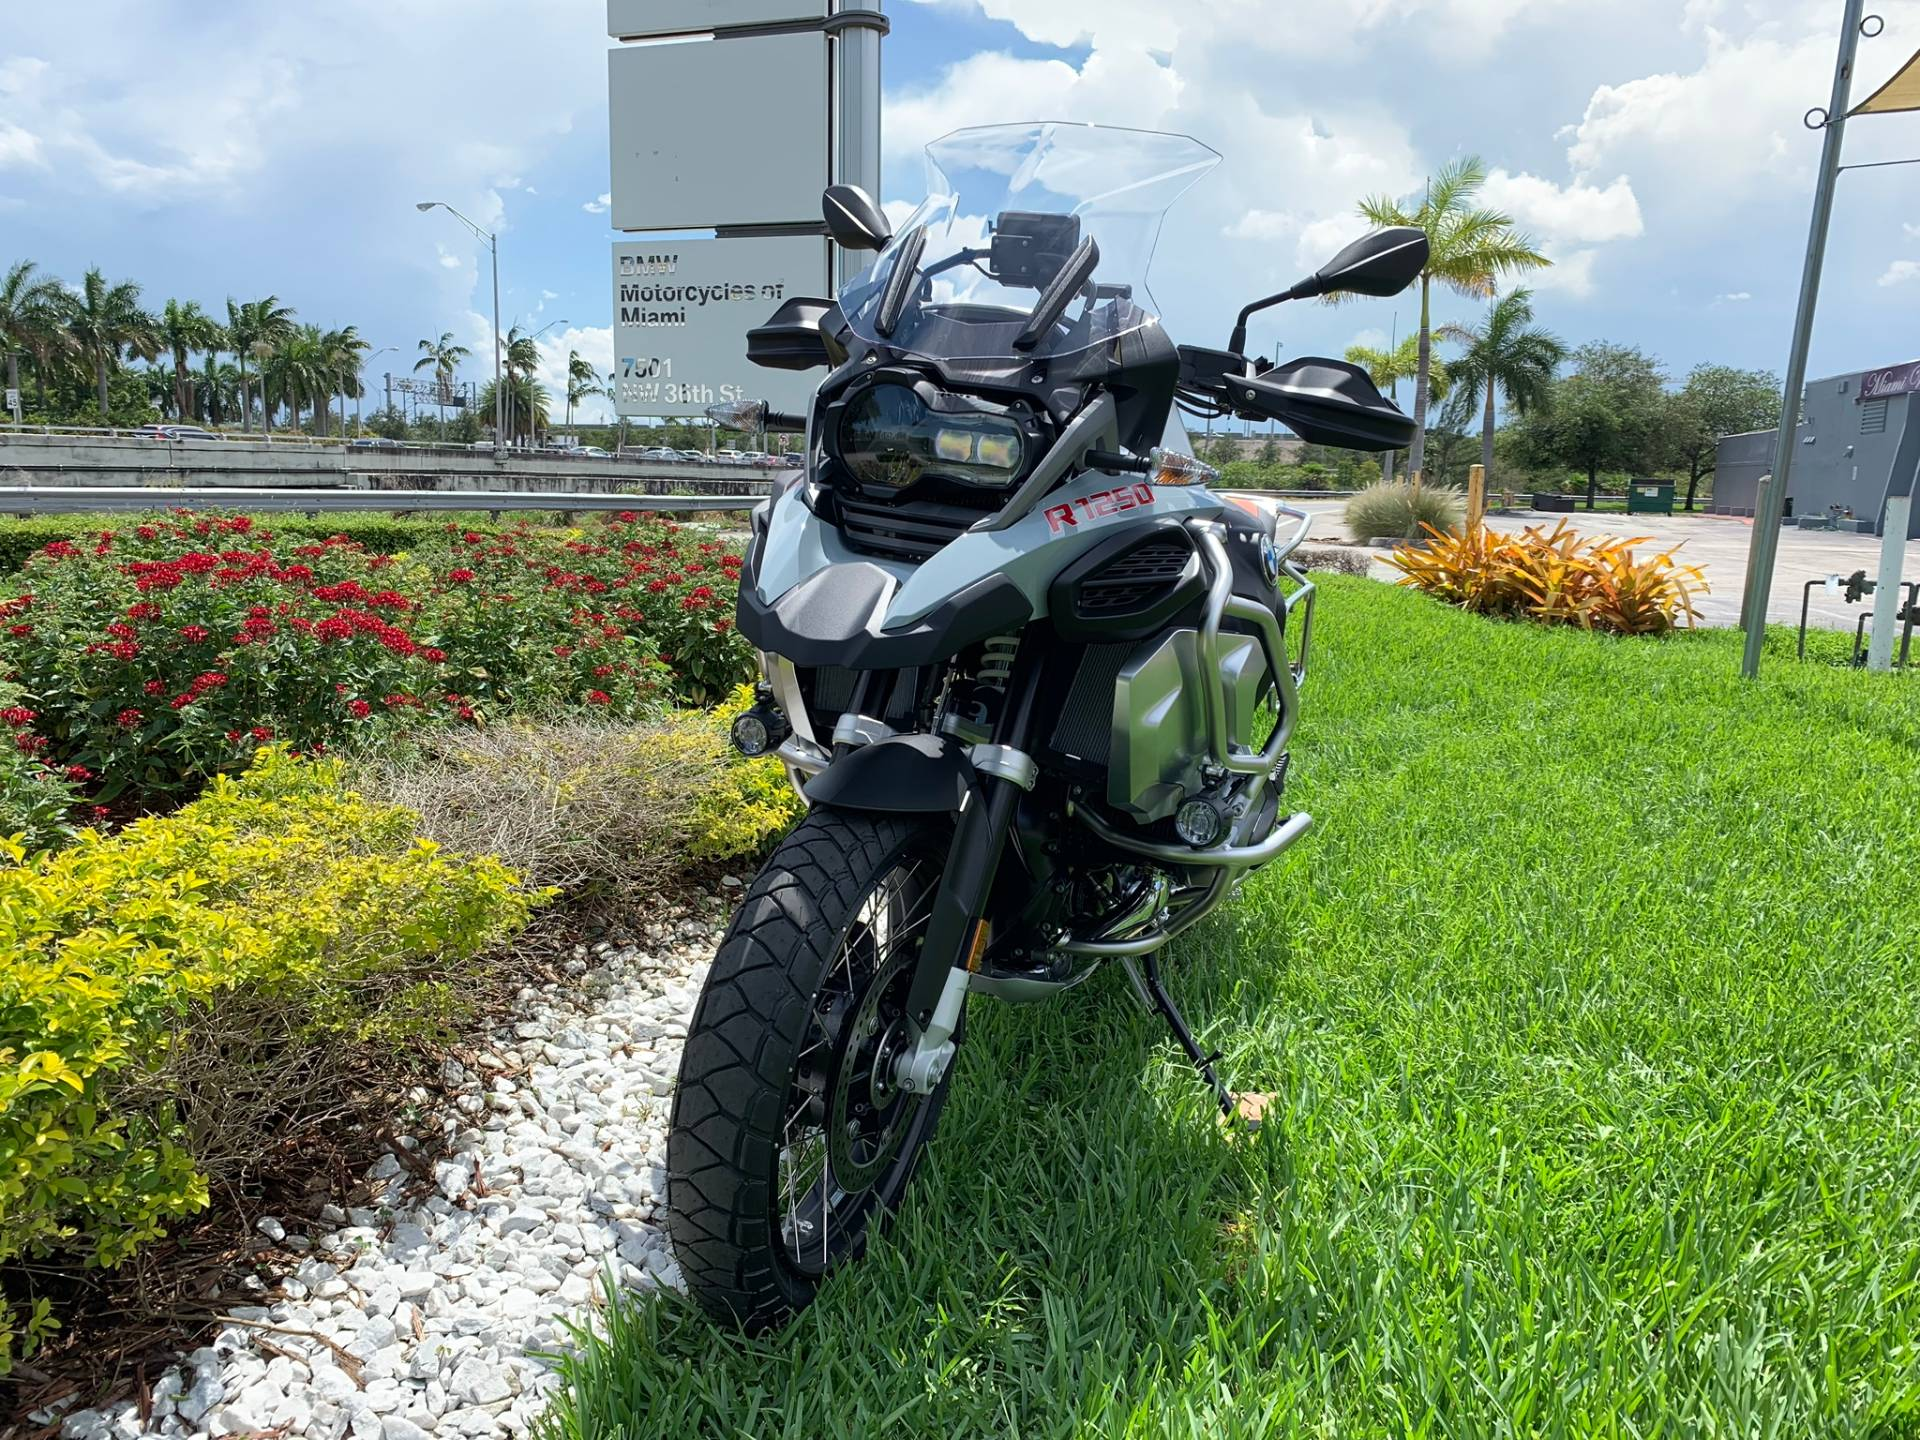 New 2019 BMW R 1250 GSA for sale, New BMW for sale R 1250GSA, New BMW Motorcycle R1250GSA for sale, new BMW 1250GS Adventure, R1250GS Adventure, Adventure. BMW Motorcycles of Miami, Motorcycles of Miami, Motorcycles Miami, New Motorcycles, Used Motorcycles, pre-owned. #BMWMotorcyclesOfMiami #Motorcy - Photo 3